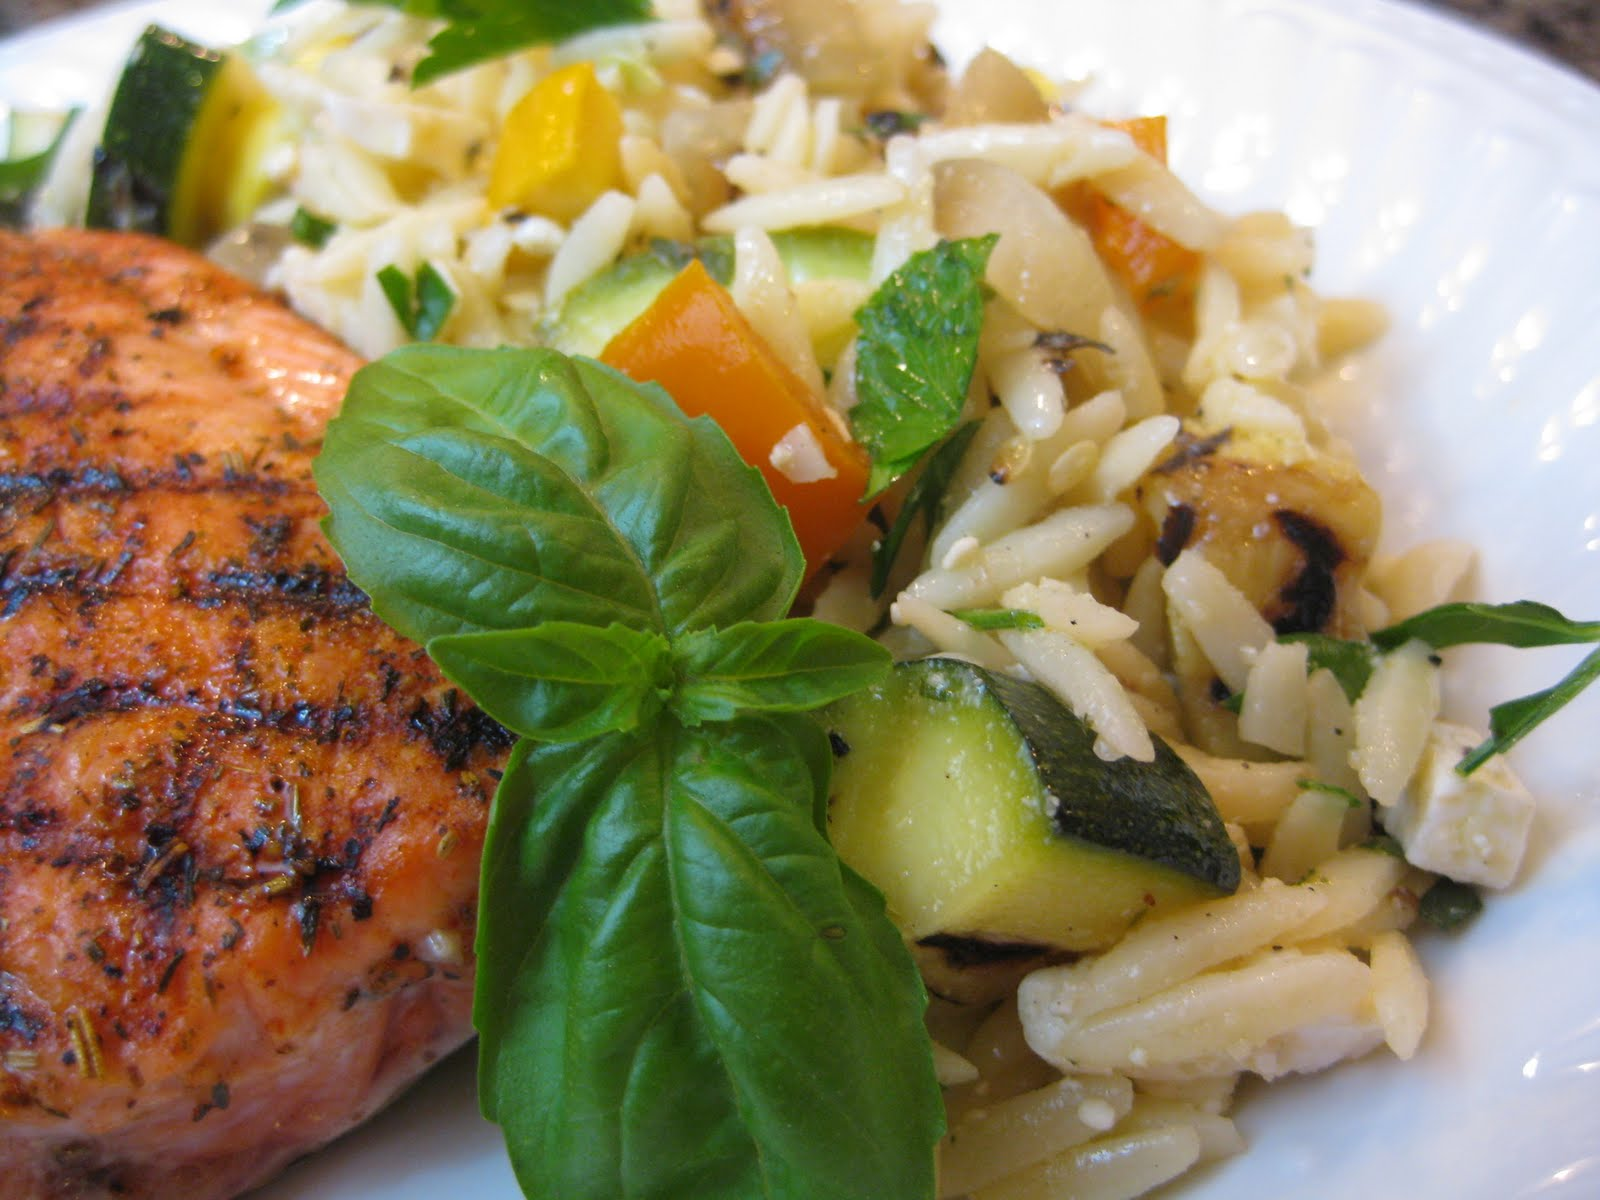 ... : Recipe Snapshot: Mediterranean Orzo Salad with Grilled Vegetables